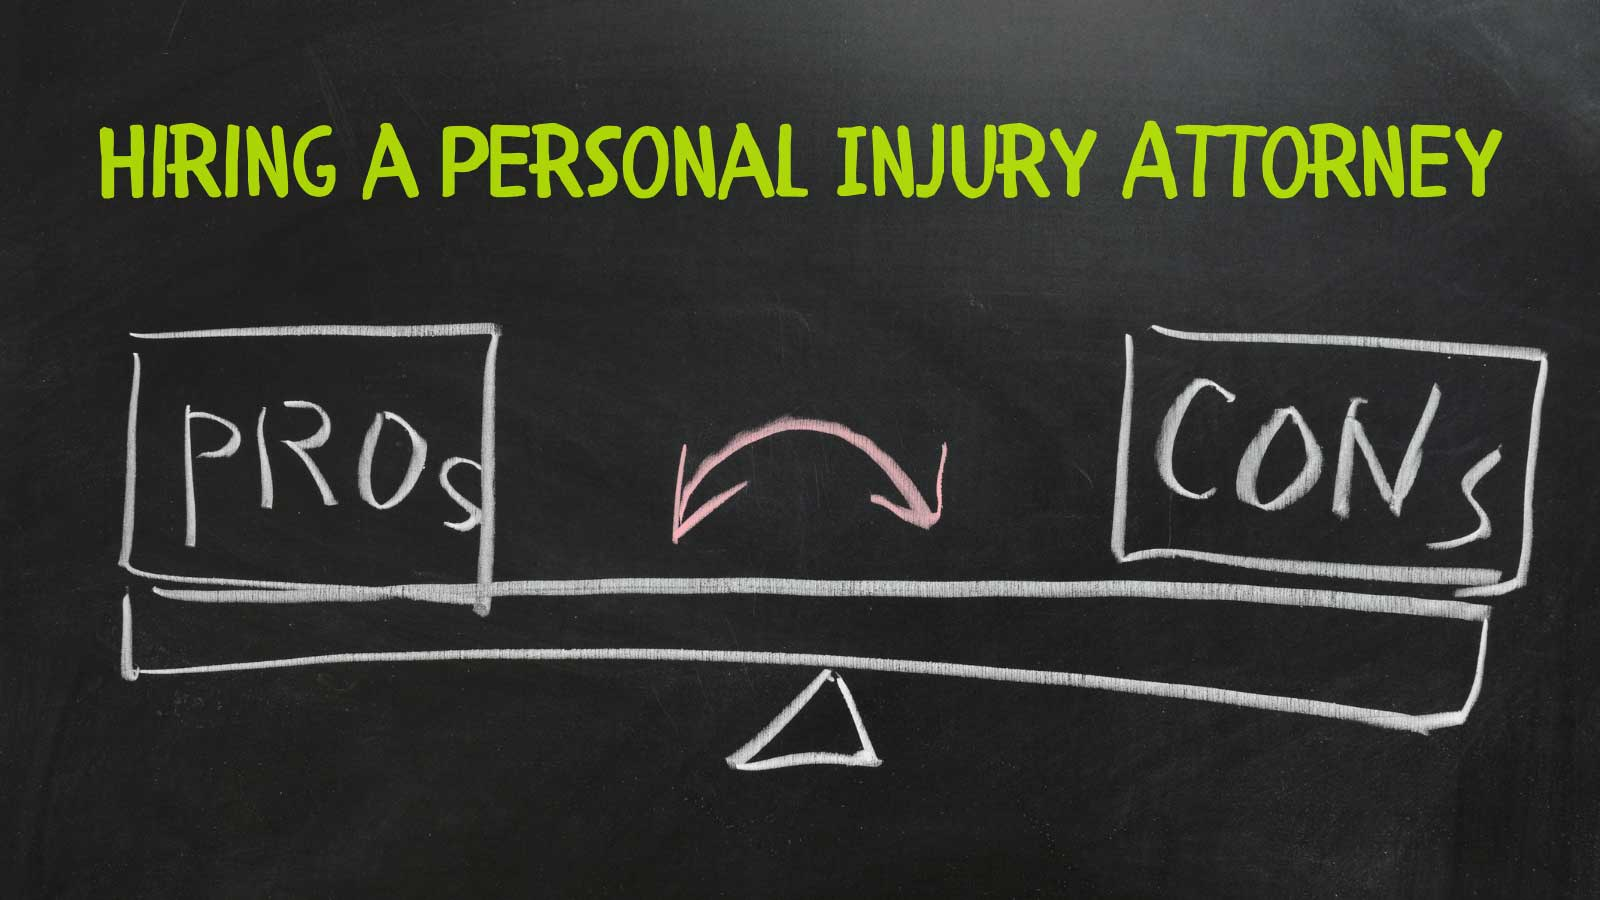 Pros and Cons of Hiring a personal injury attorney